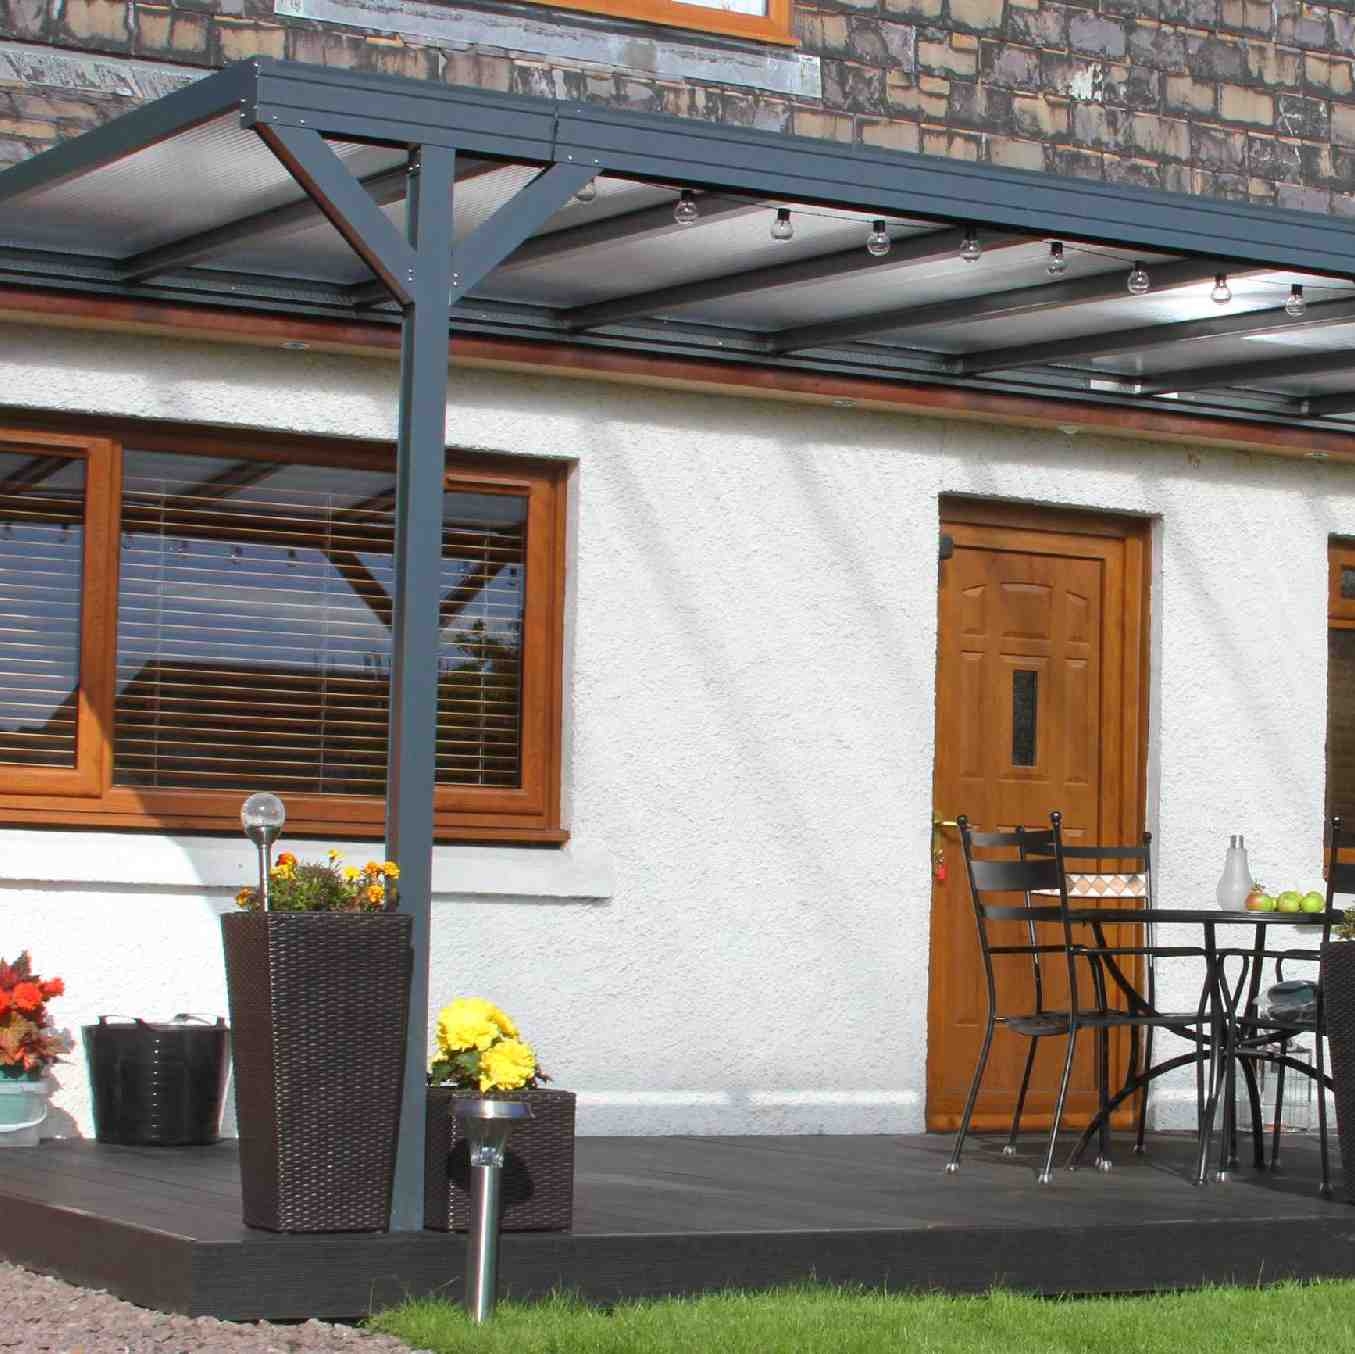 Omega Verandah, Anthracite Grey, 16mm Polycarbonate Glazing - 3.5m (W) x 3.5m (P), (3) Supporting Posts